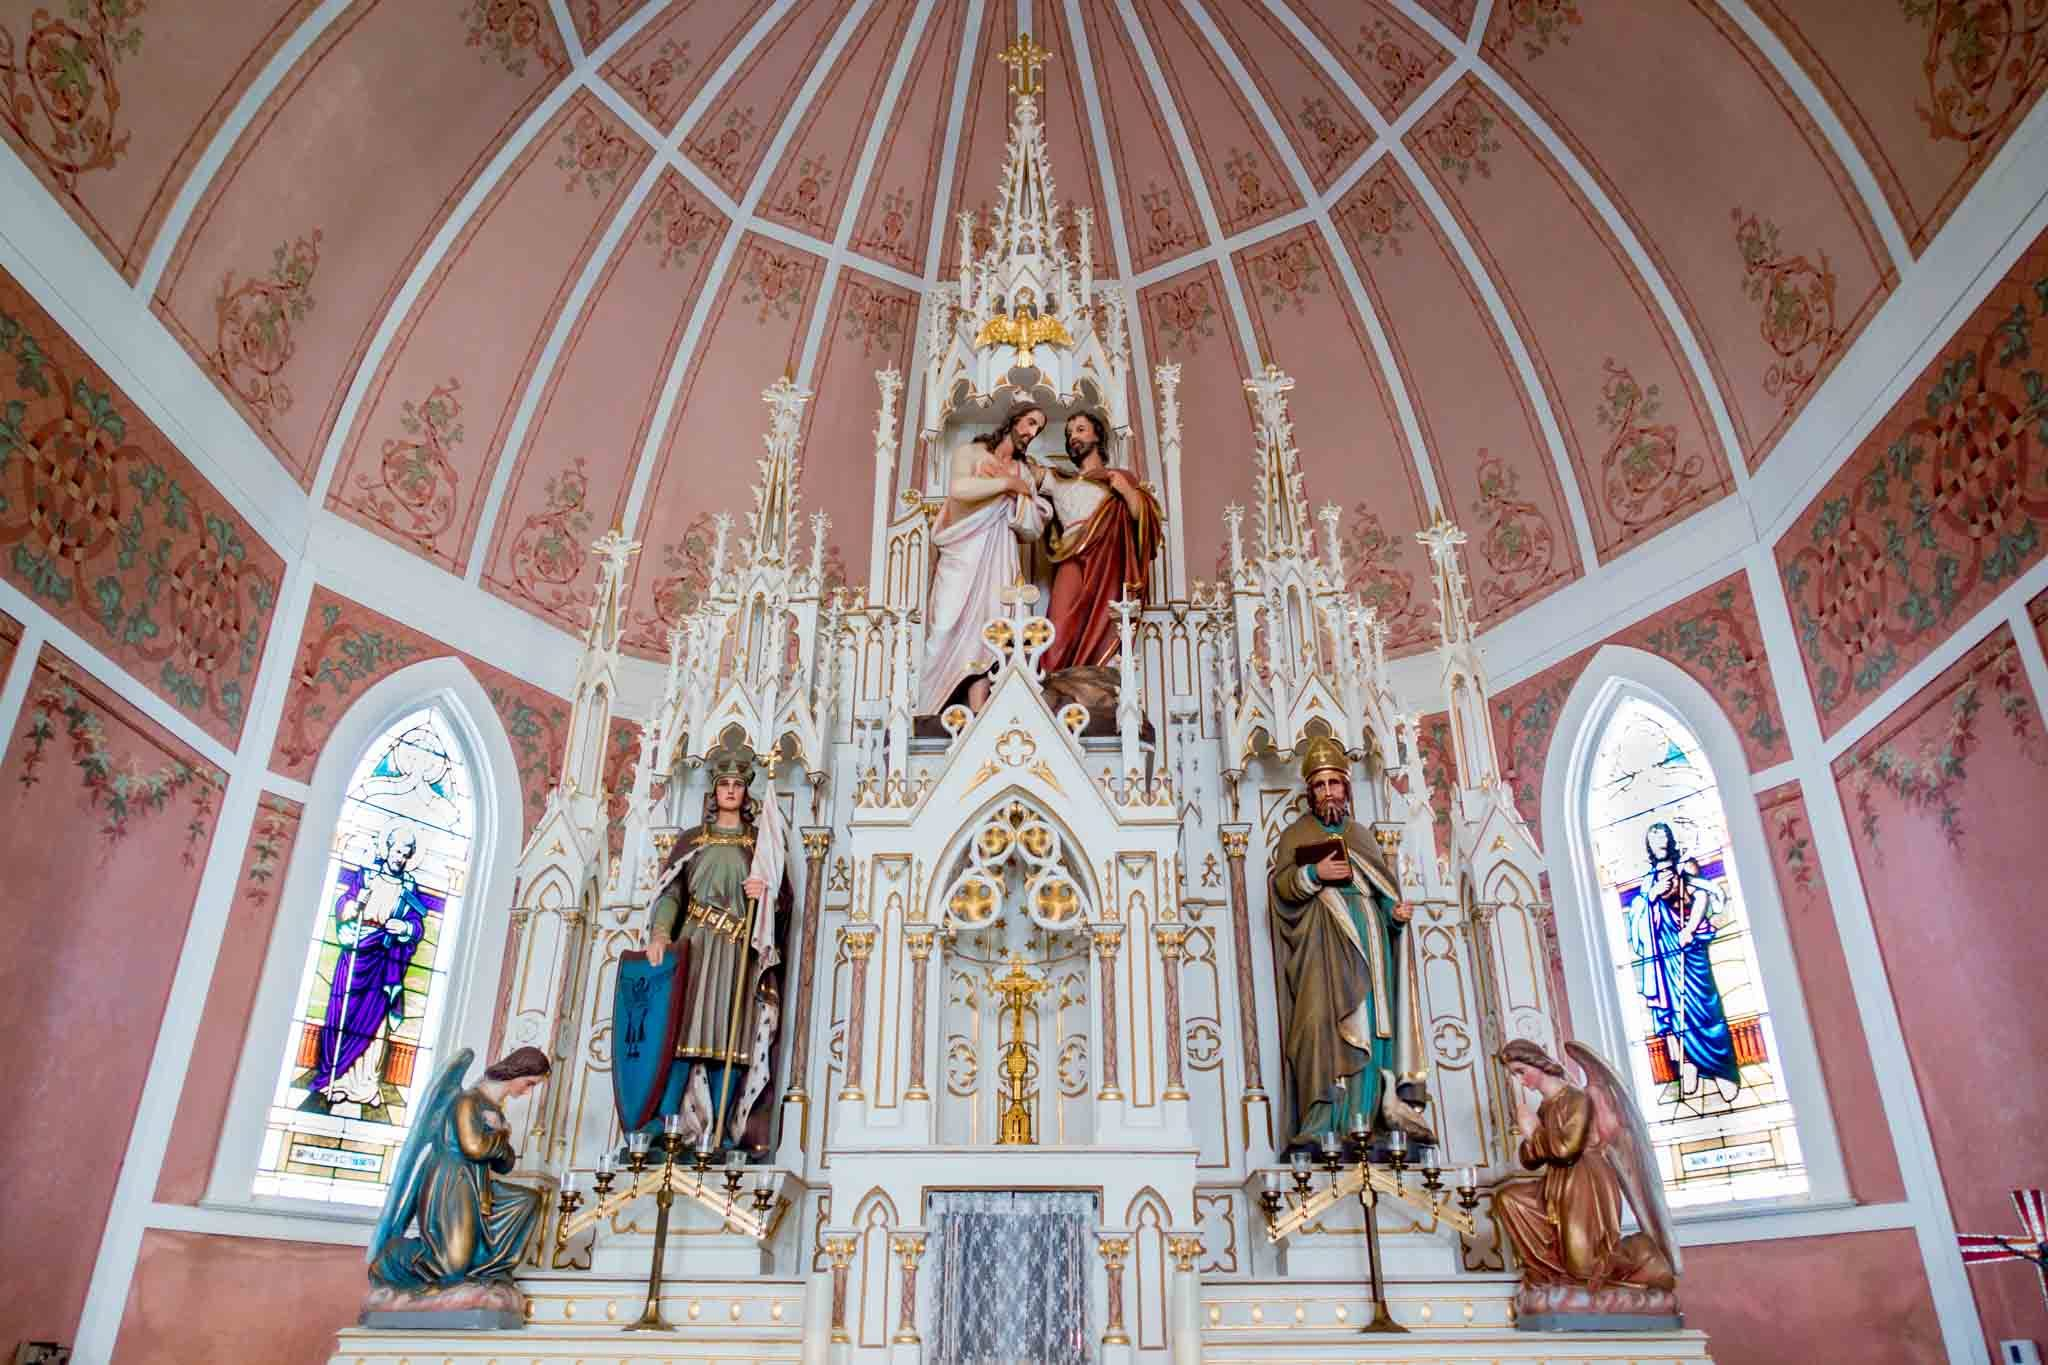 The altar of St. John the Baptist in Ammansville, one of the painted churches of Texas